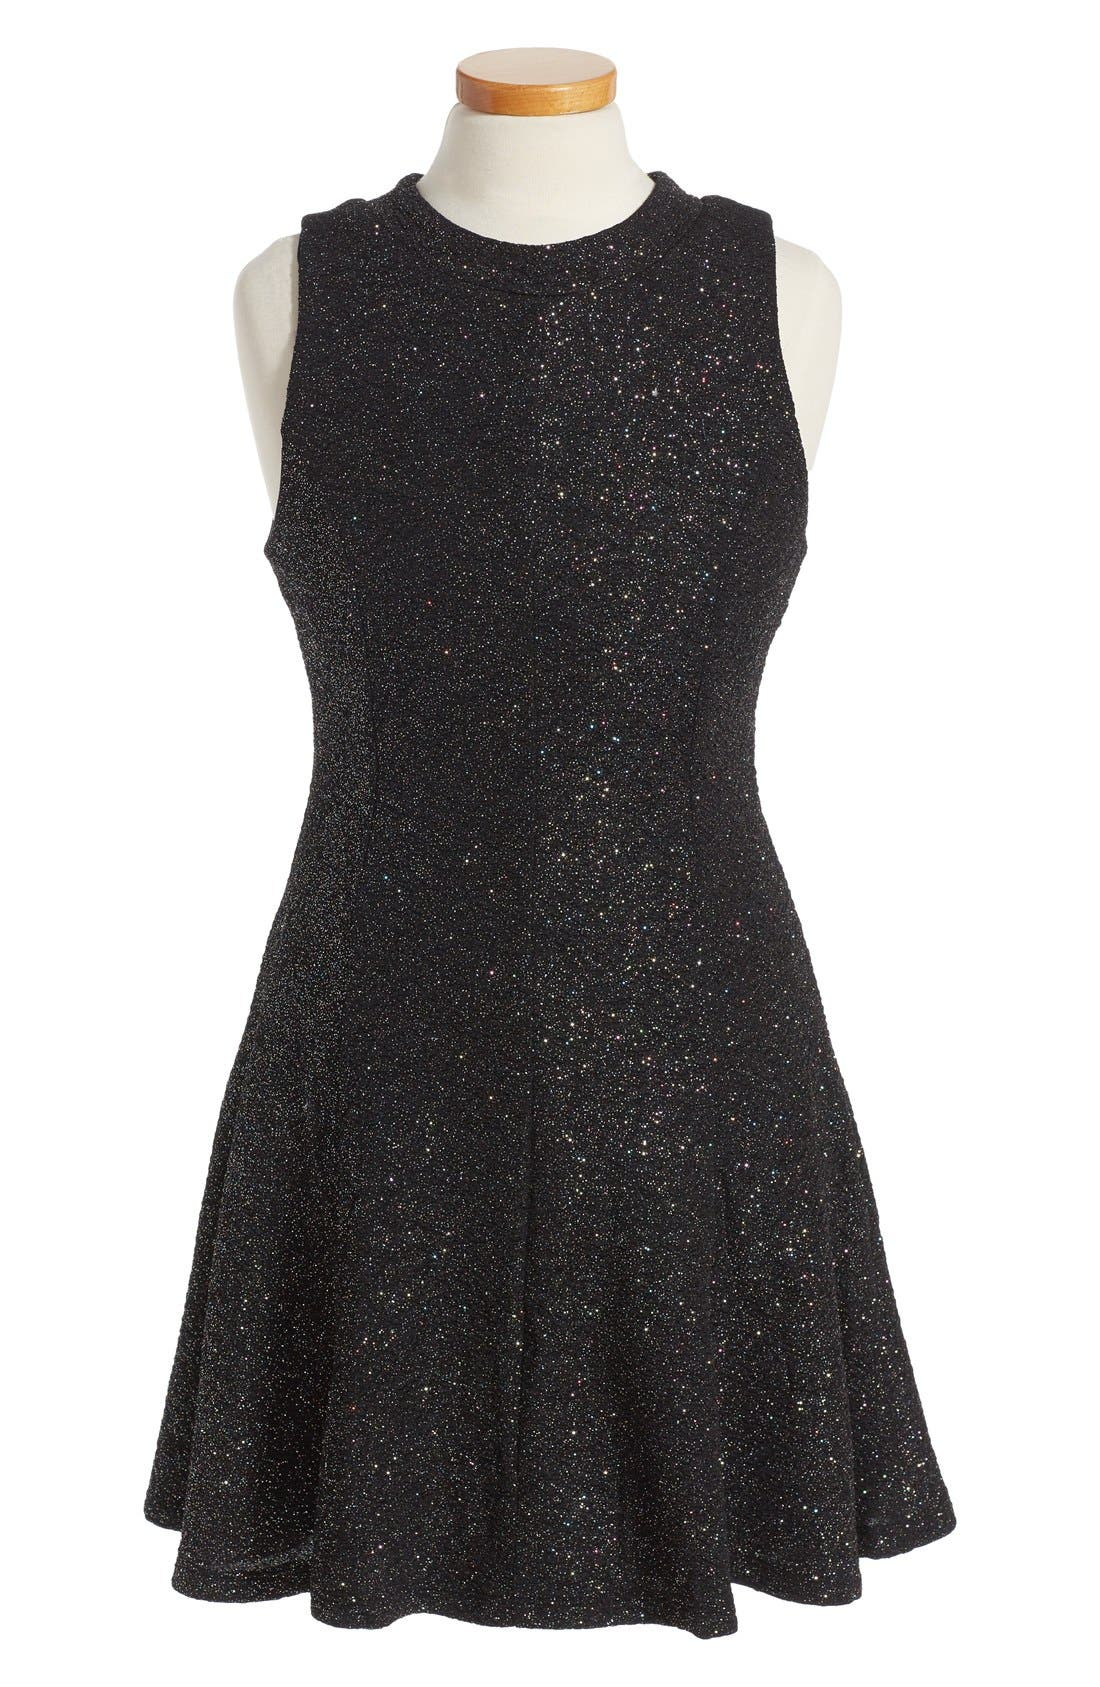 Shimmer Swing Dress,                             Main thumbnail 1, color,                             Black